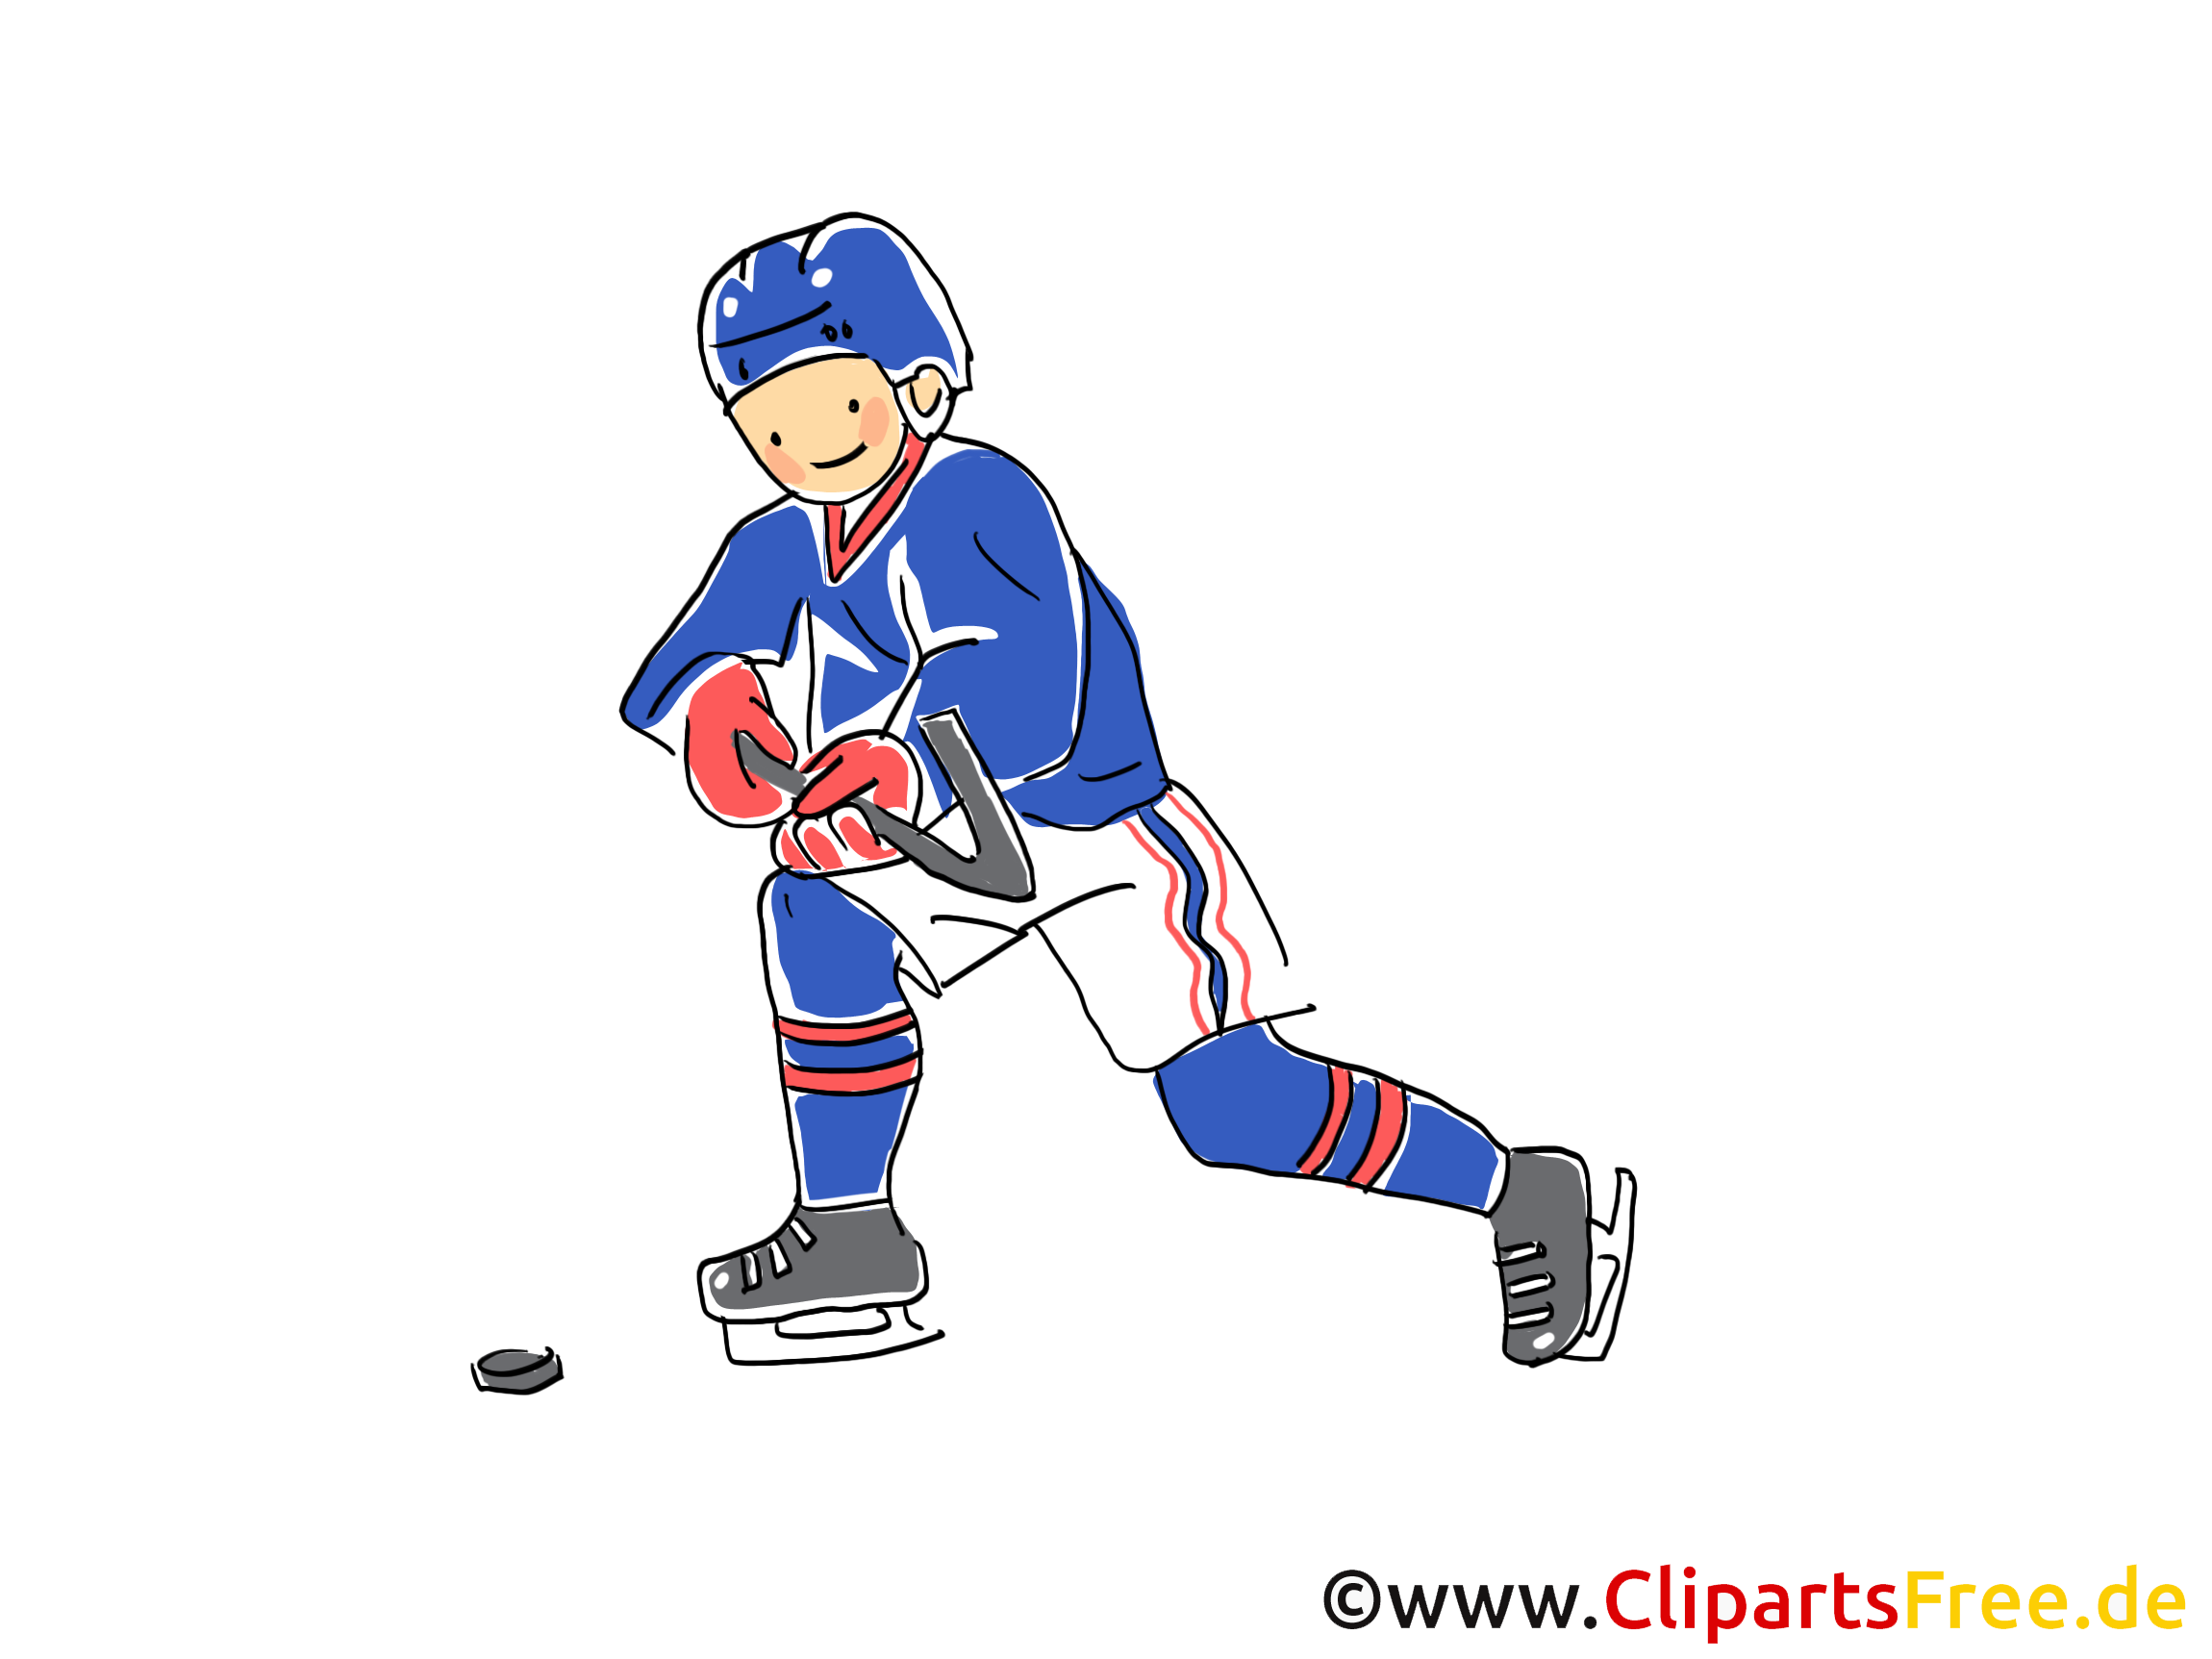 Sport d'hiver clip arts gratuits - Hockey illustrations